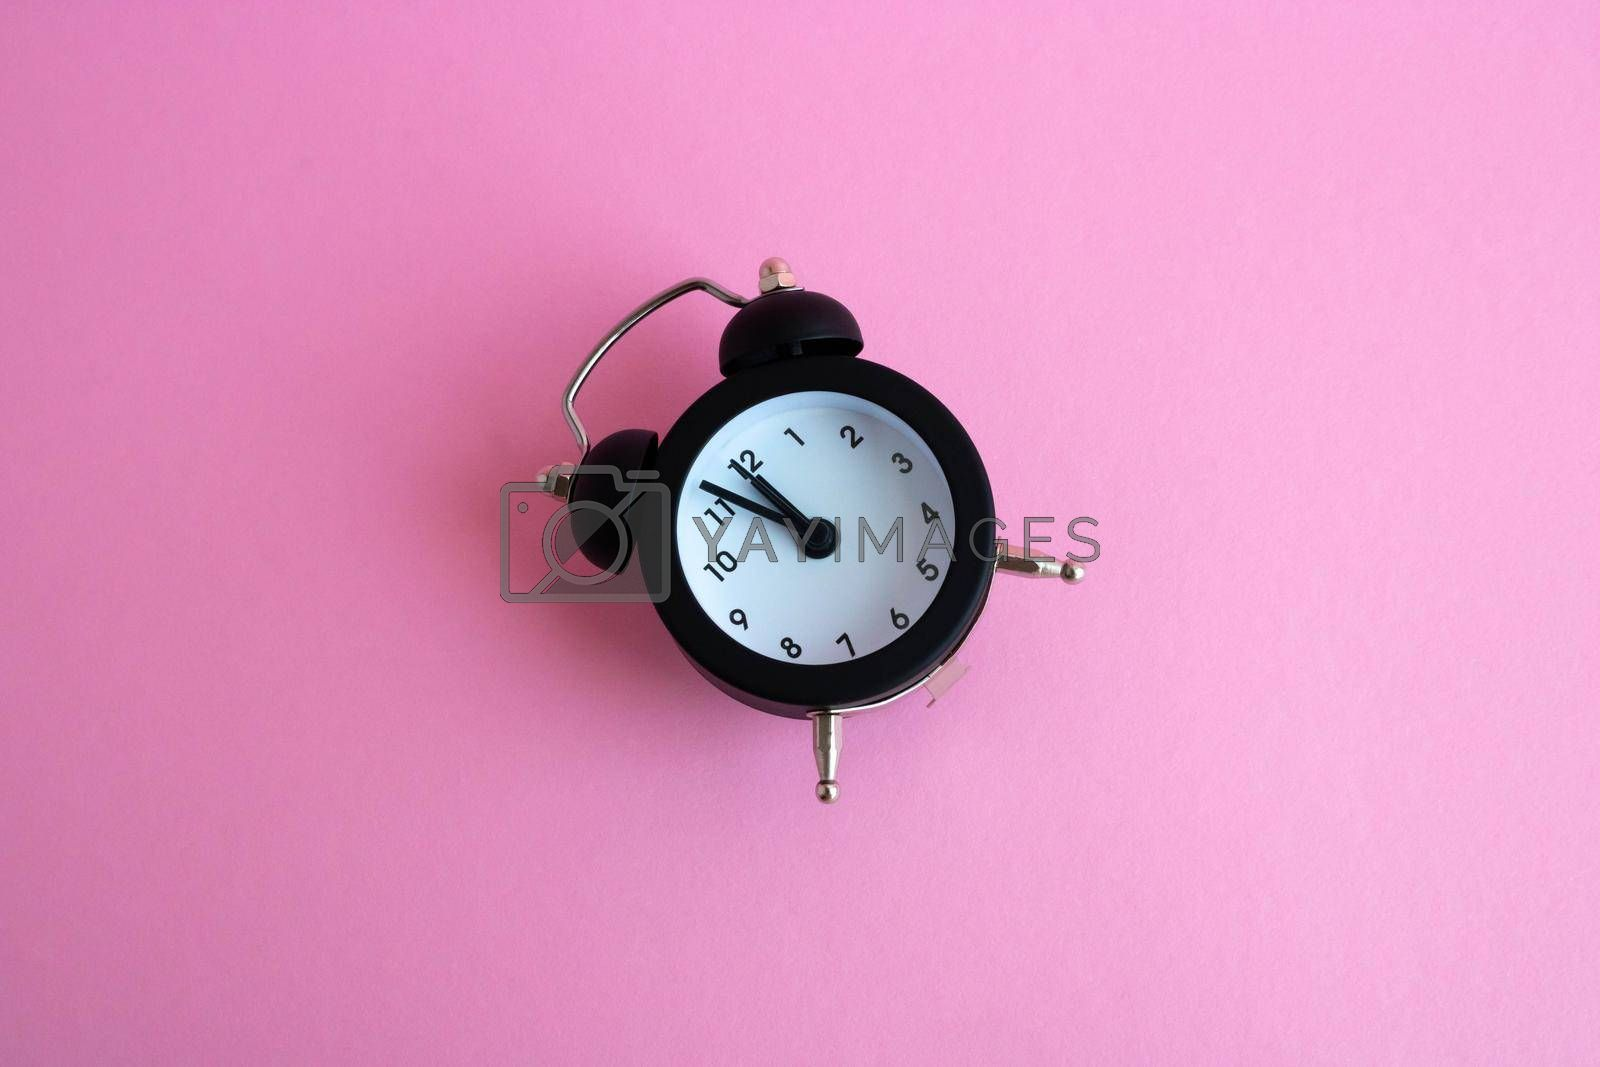 Black vintage alarm clock lying on a pink background.